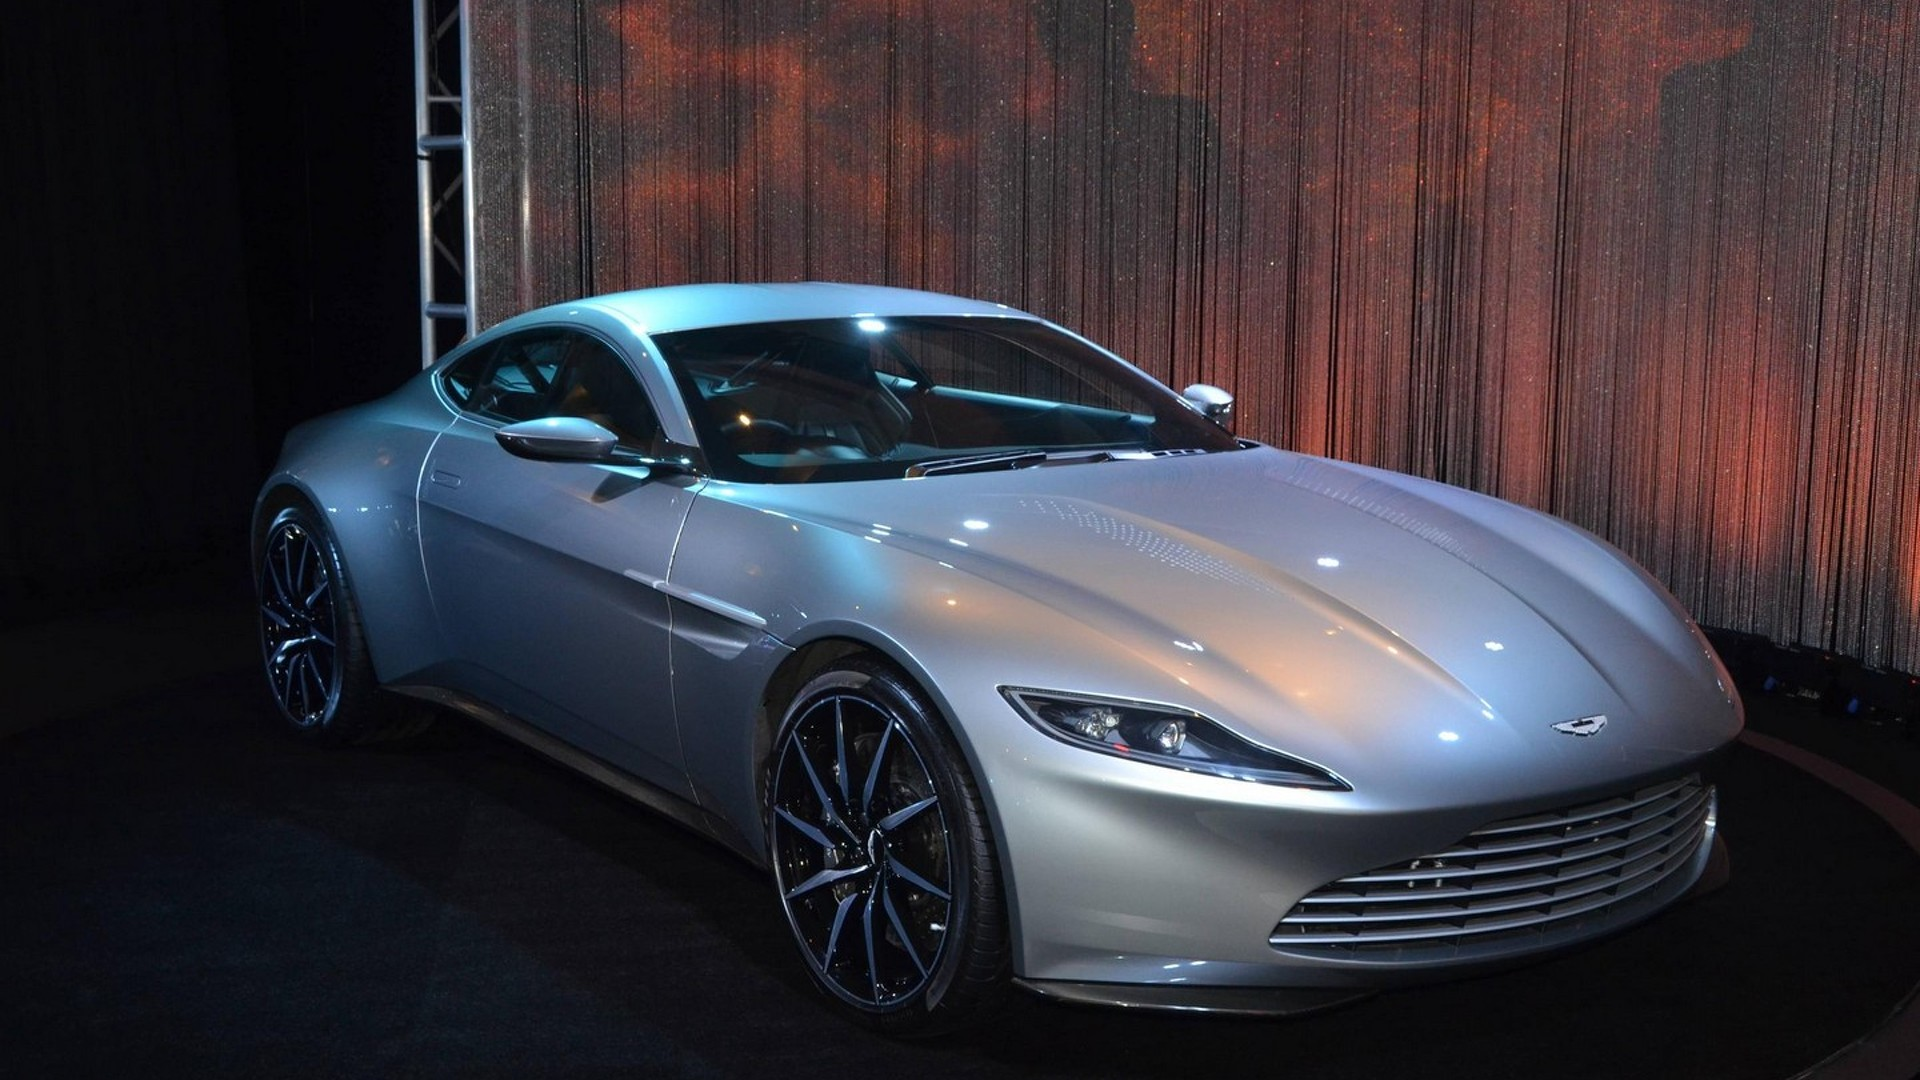 James Bond visits LA to show off Aston Martin DB10